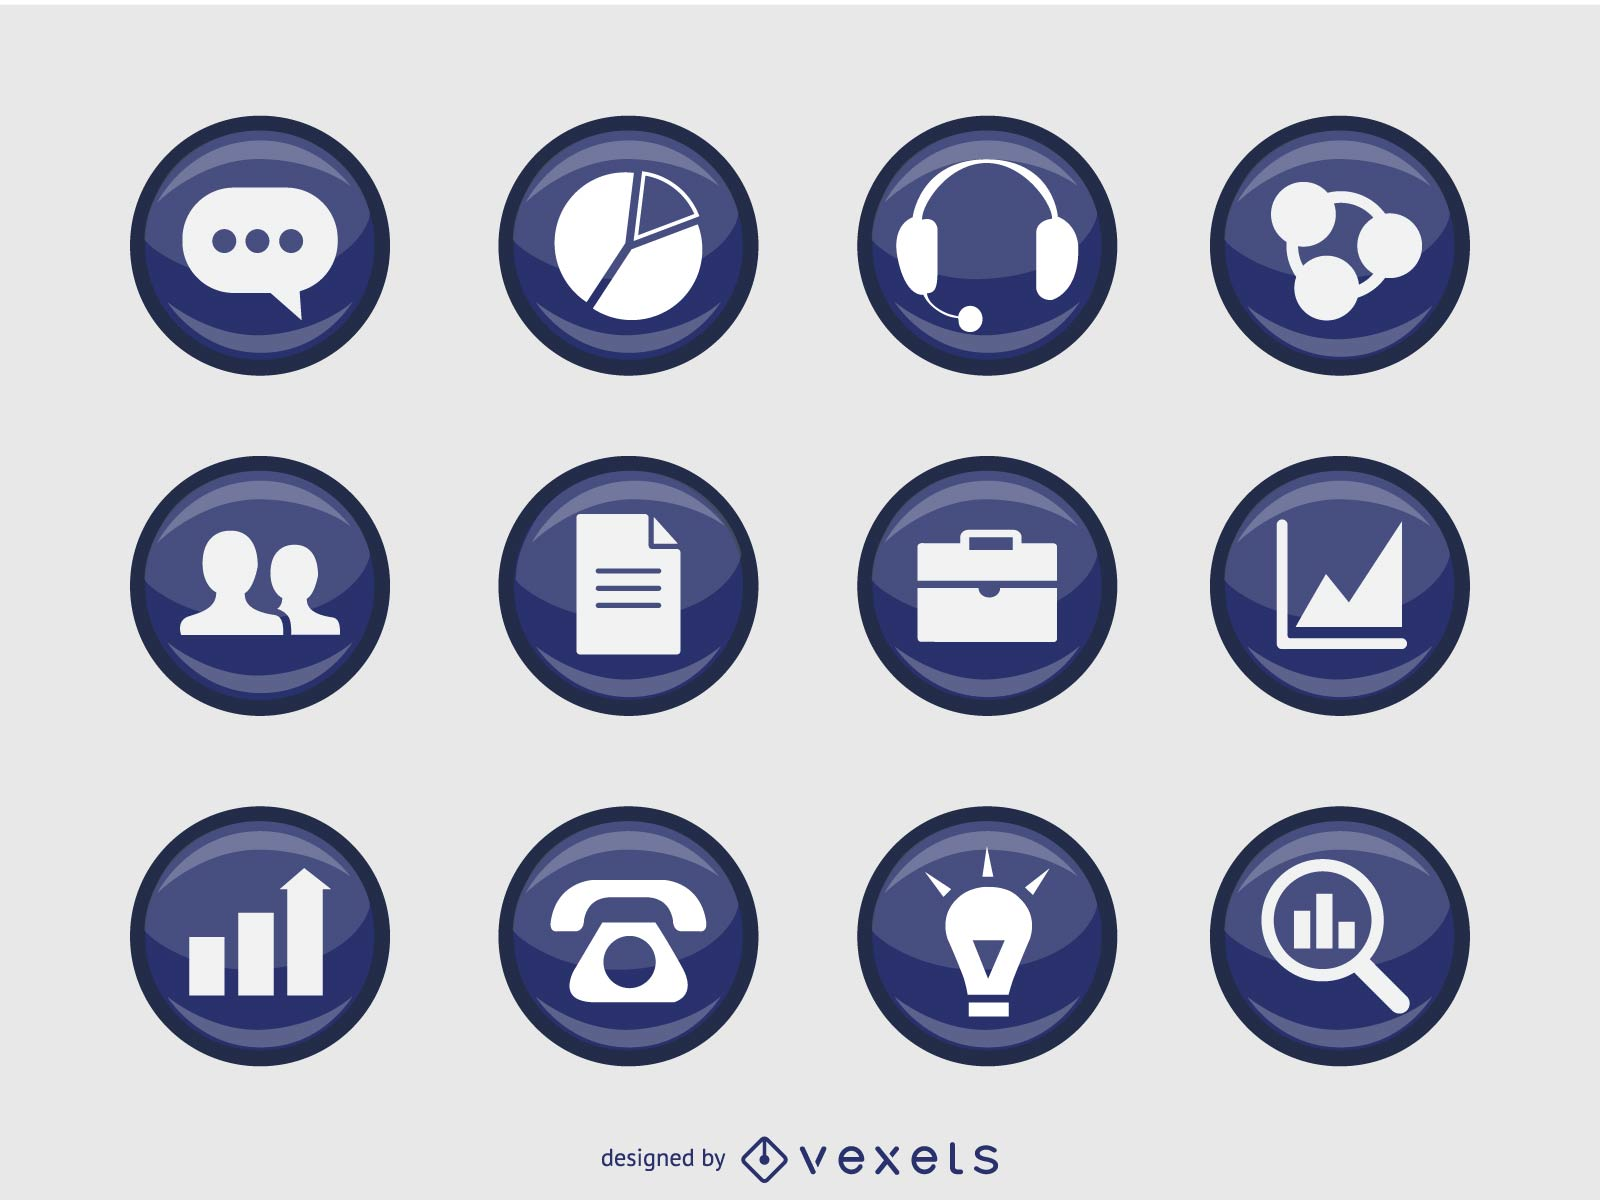 Business Icons in 3D and in badge form